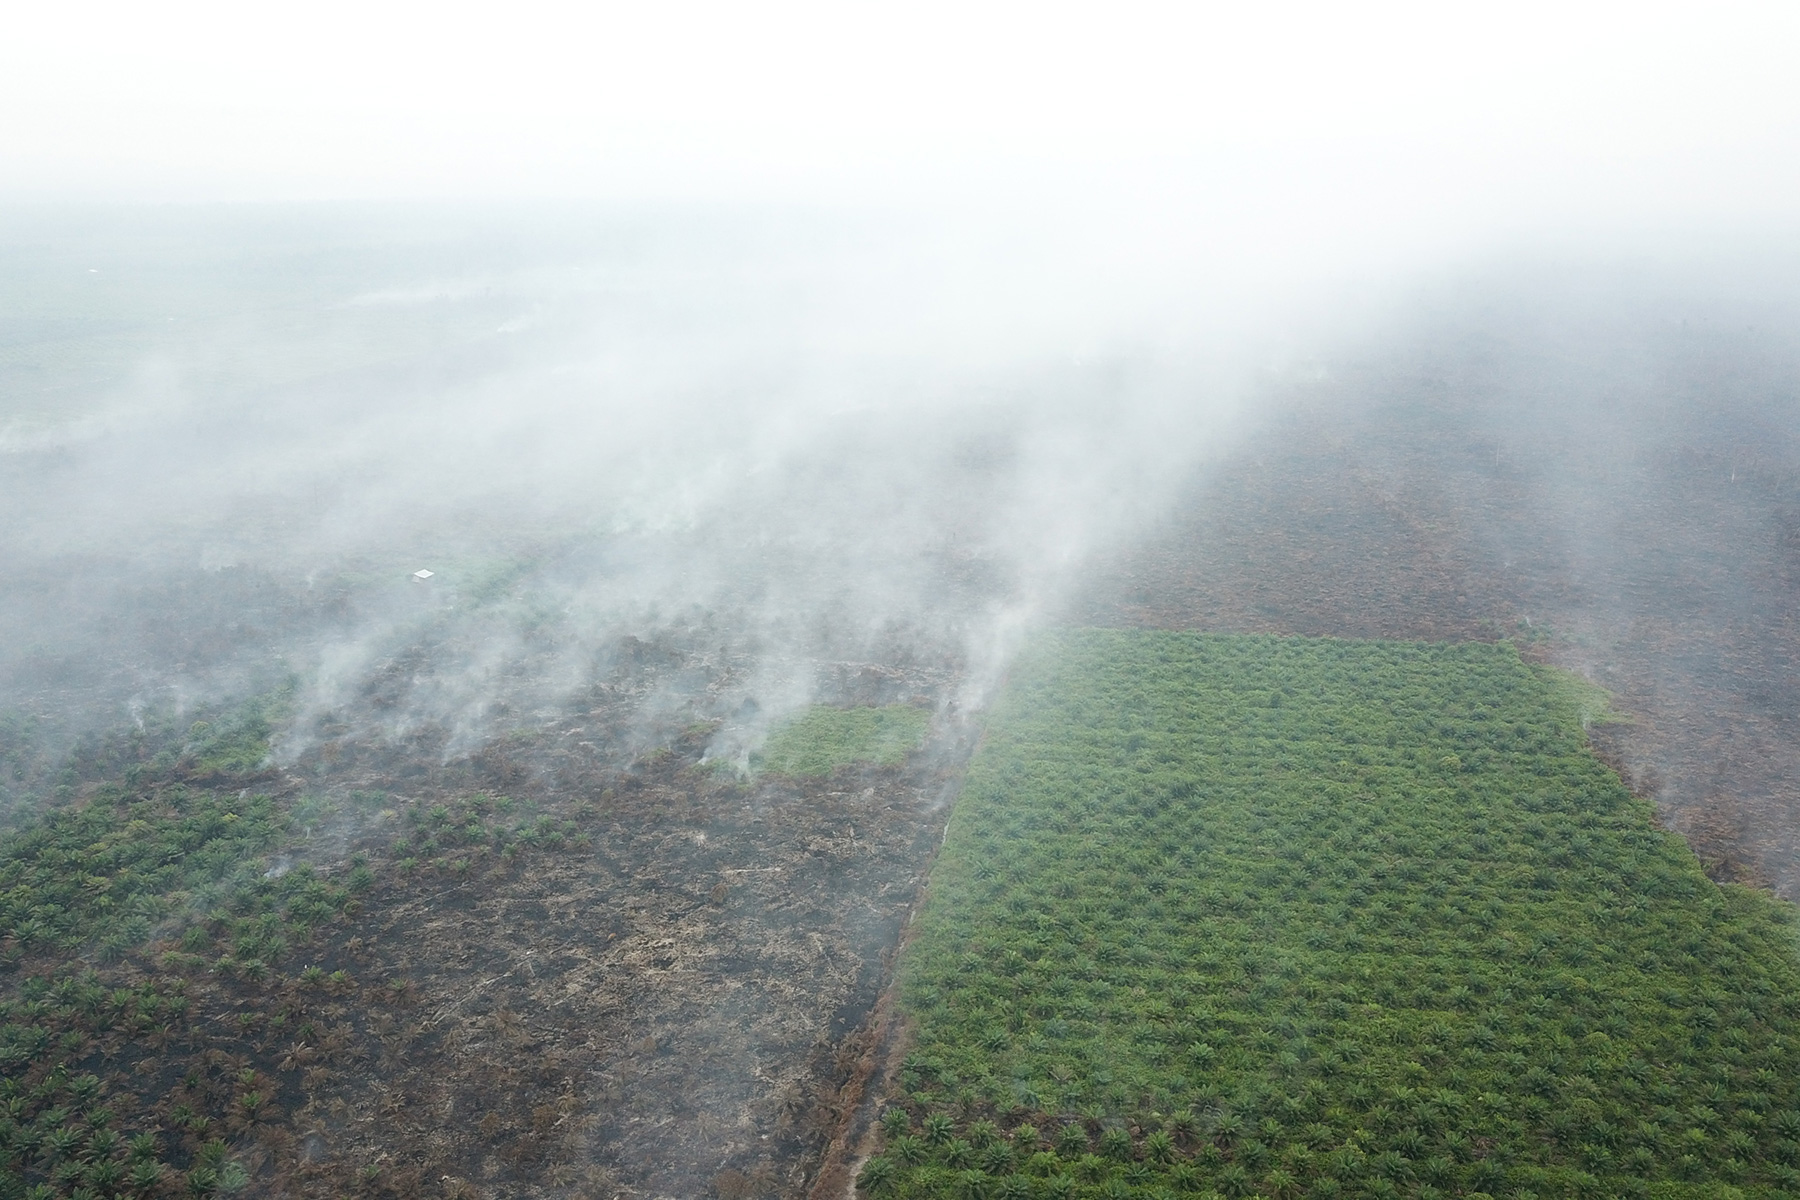 Malaysia to ban oil palm expansion?1800 x 1200 jpeg 622kB